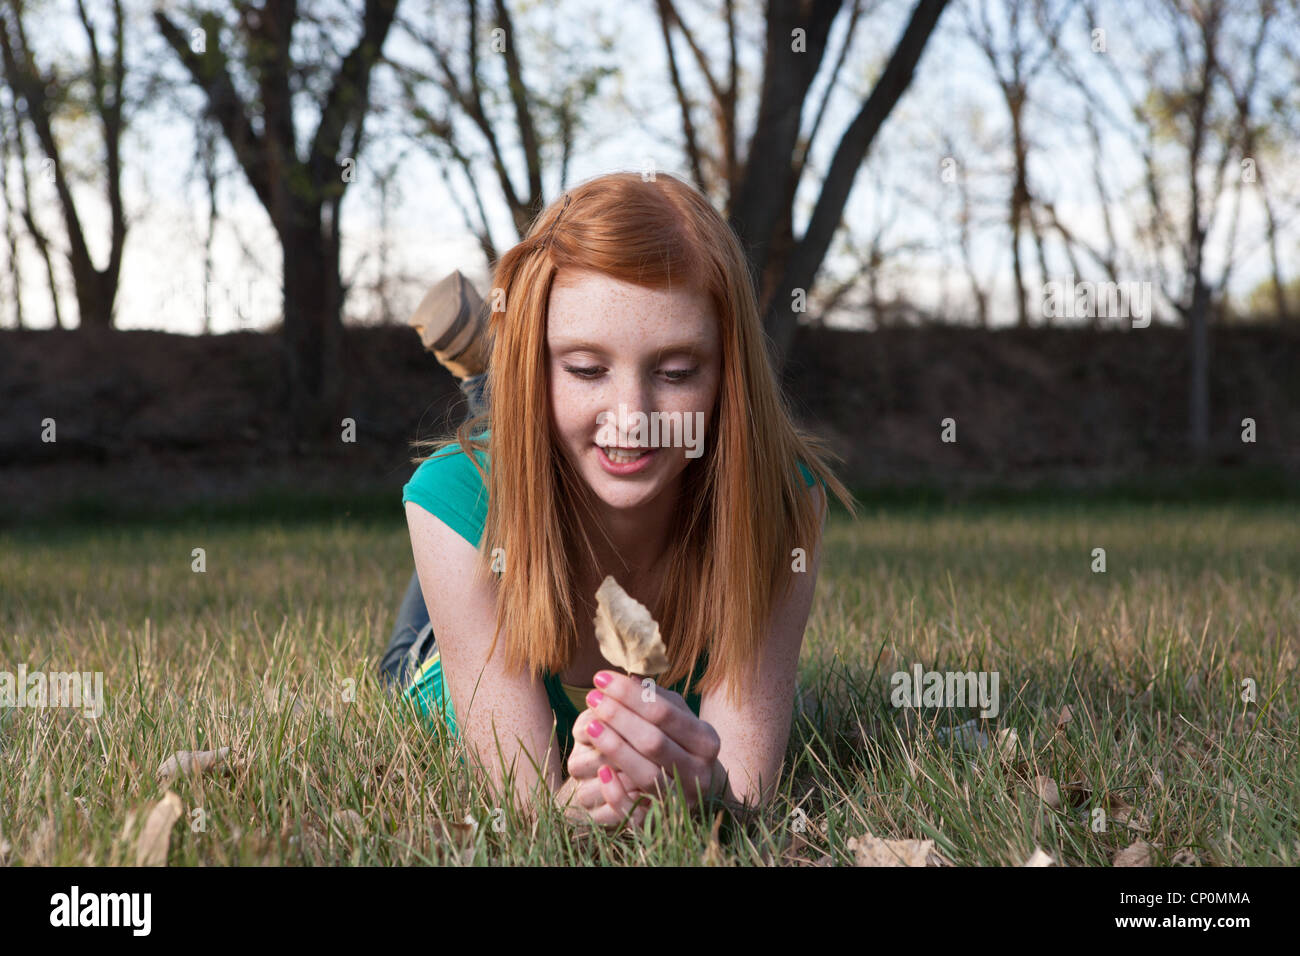 Pretty fifteen year old girl with red hair holding leaf in a field - Stock Image